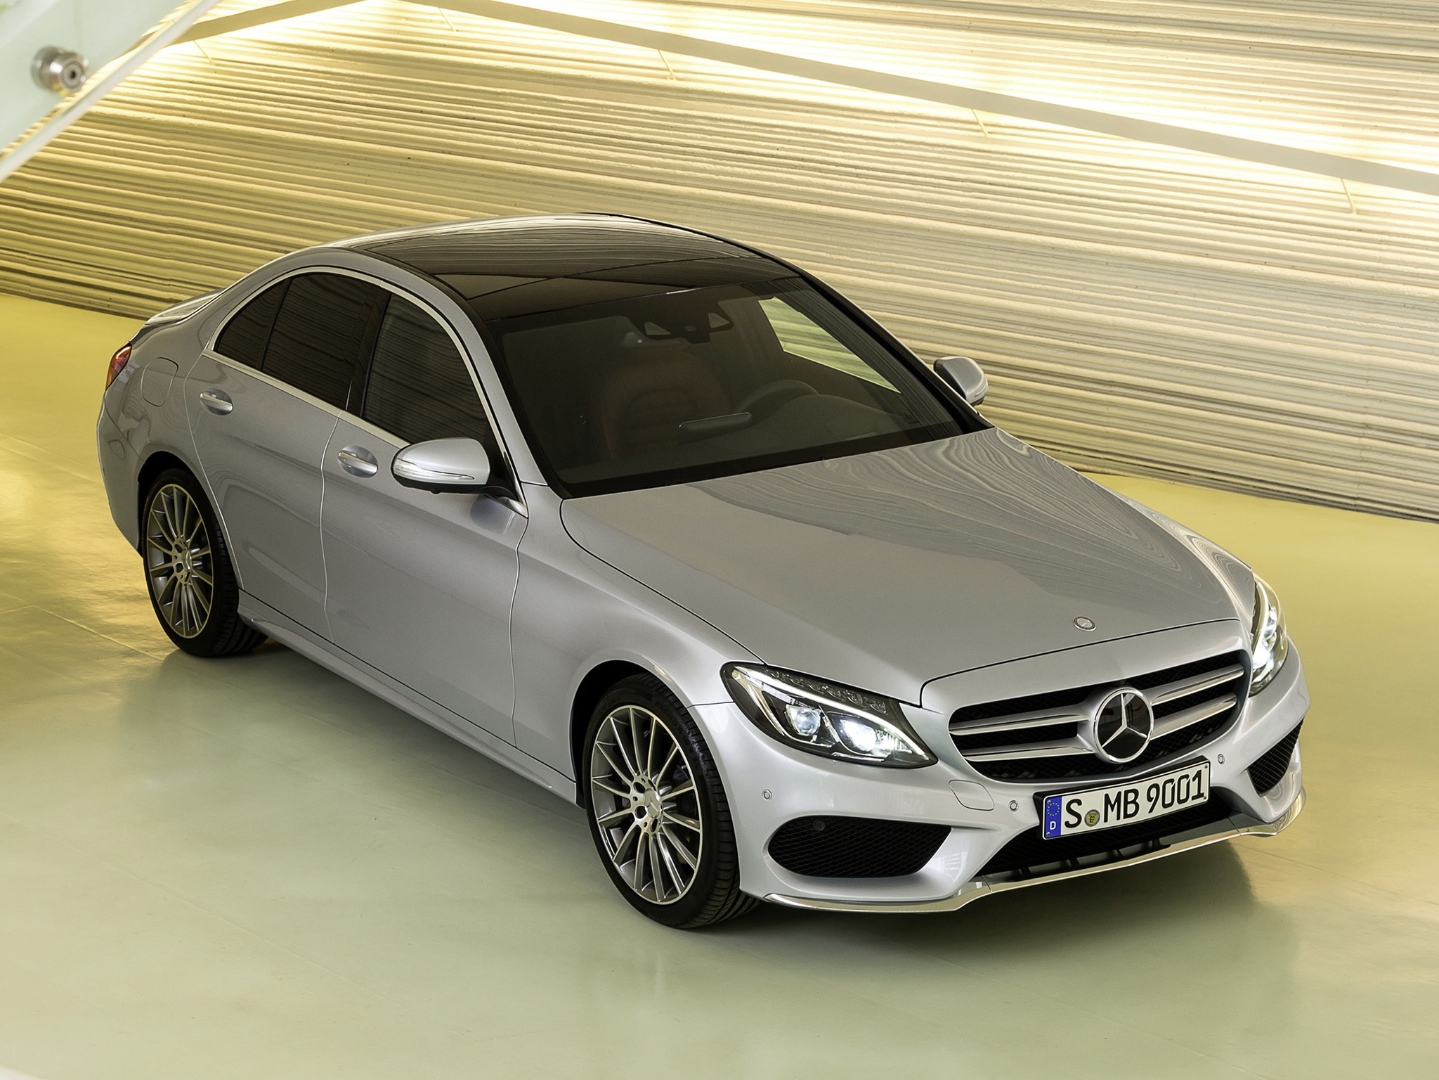 2015 mercedes benz c class w205 gets priced in the uk autoevolution. Black Bedroom Furniture Sets. Home Design Ideas